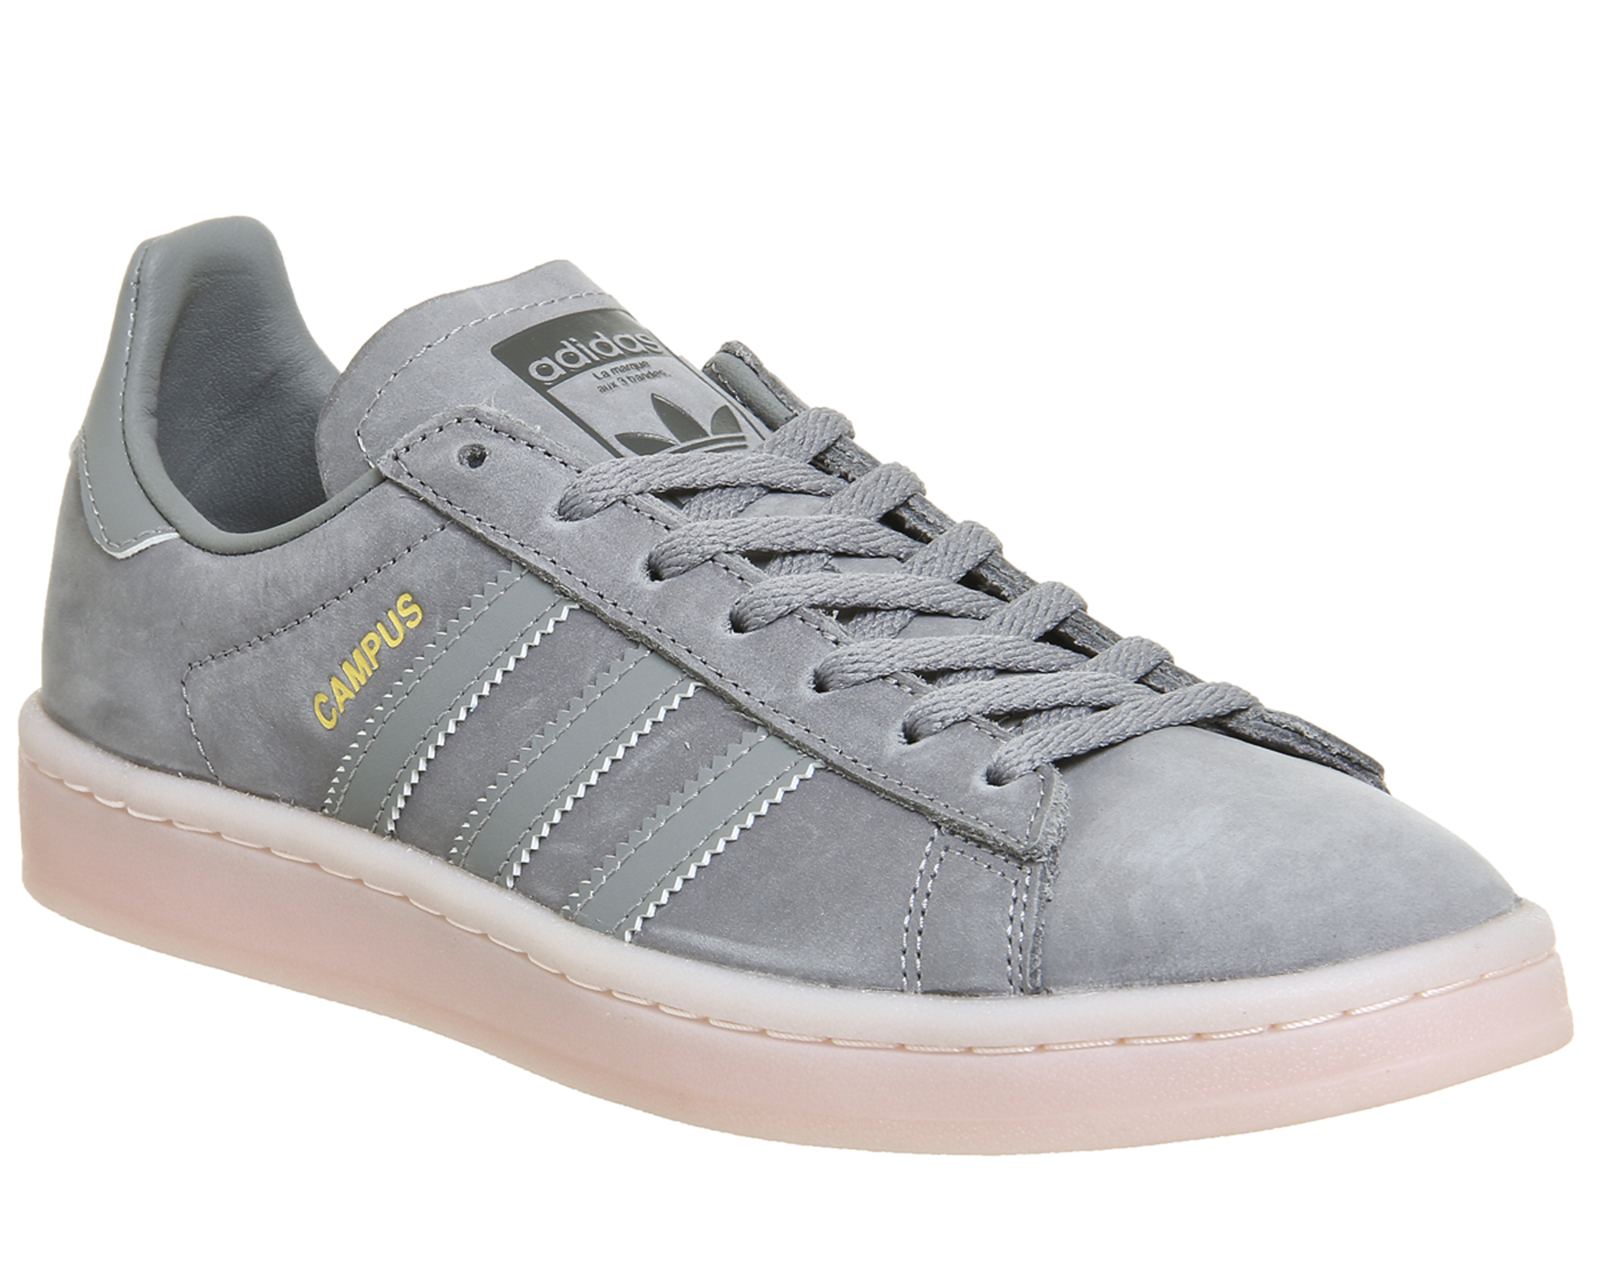 863f6d6d075370 Sentinel Womens Adidas Campus Trainers GREY THREE ICEY PINK Trainers Shoes